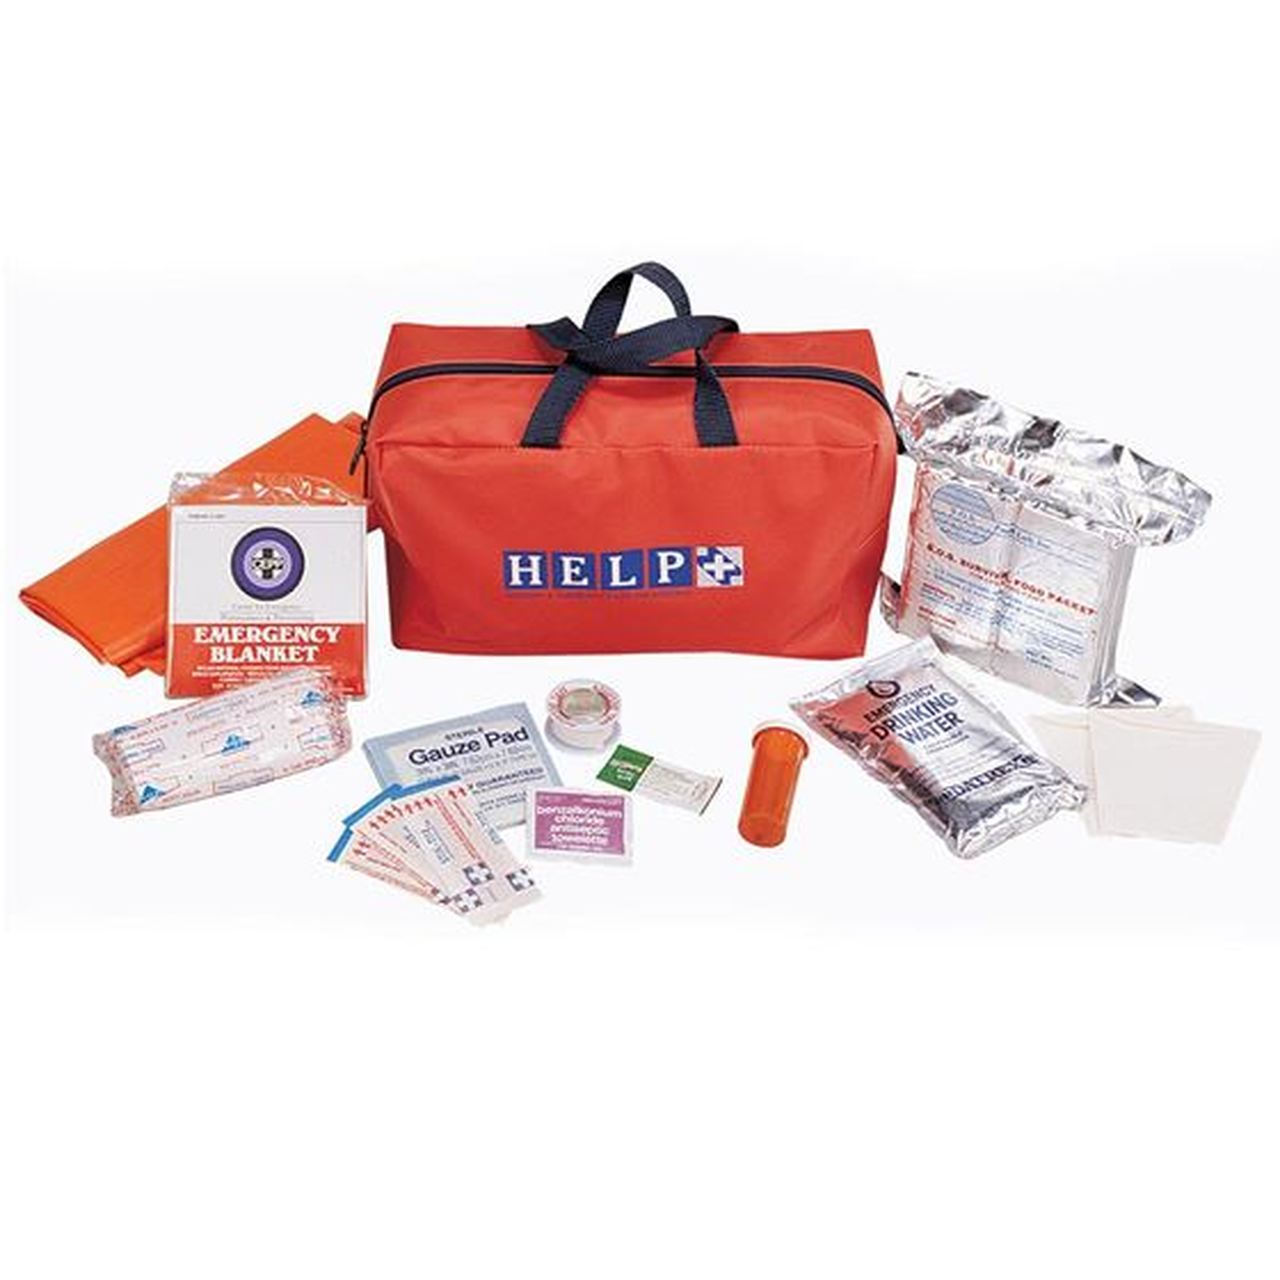 ​What to Pack in Your Emergency Survival Kit